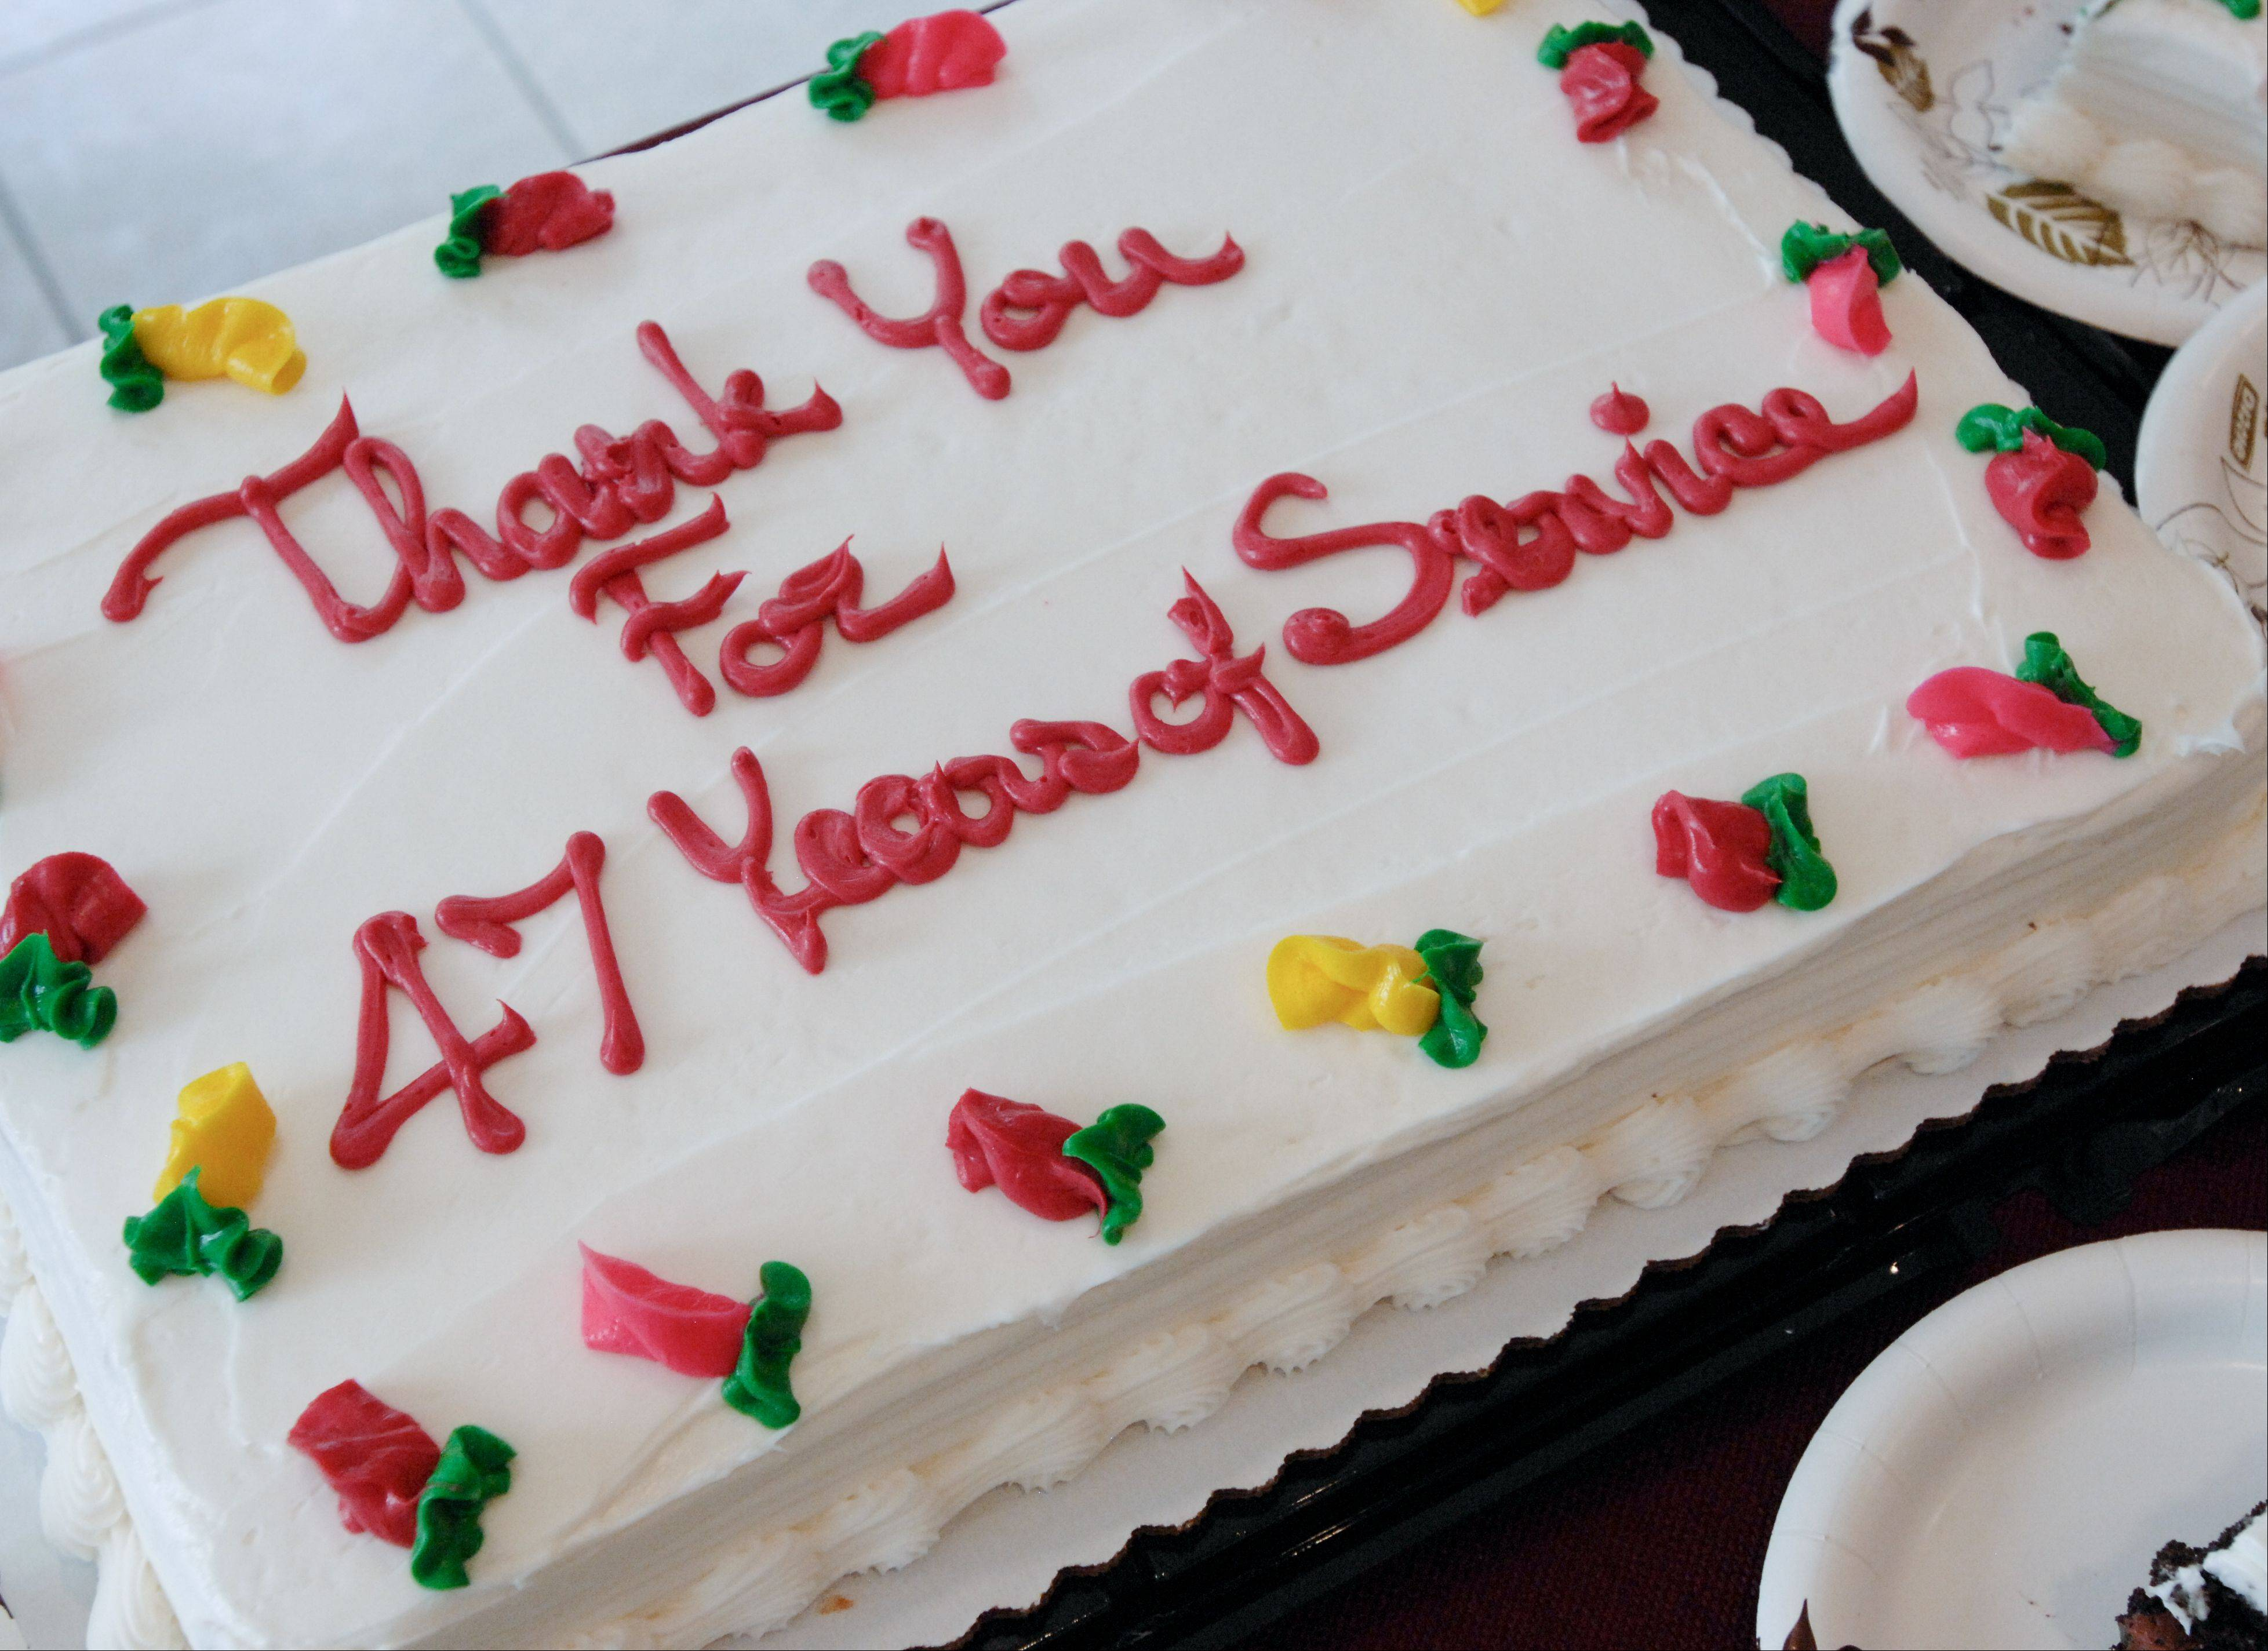 A cake thanking Wheaton Library Director Sarah Meisels for her 47 years of service was part of her retirement celebration Sunday.